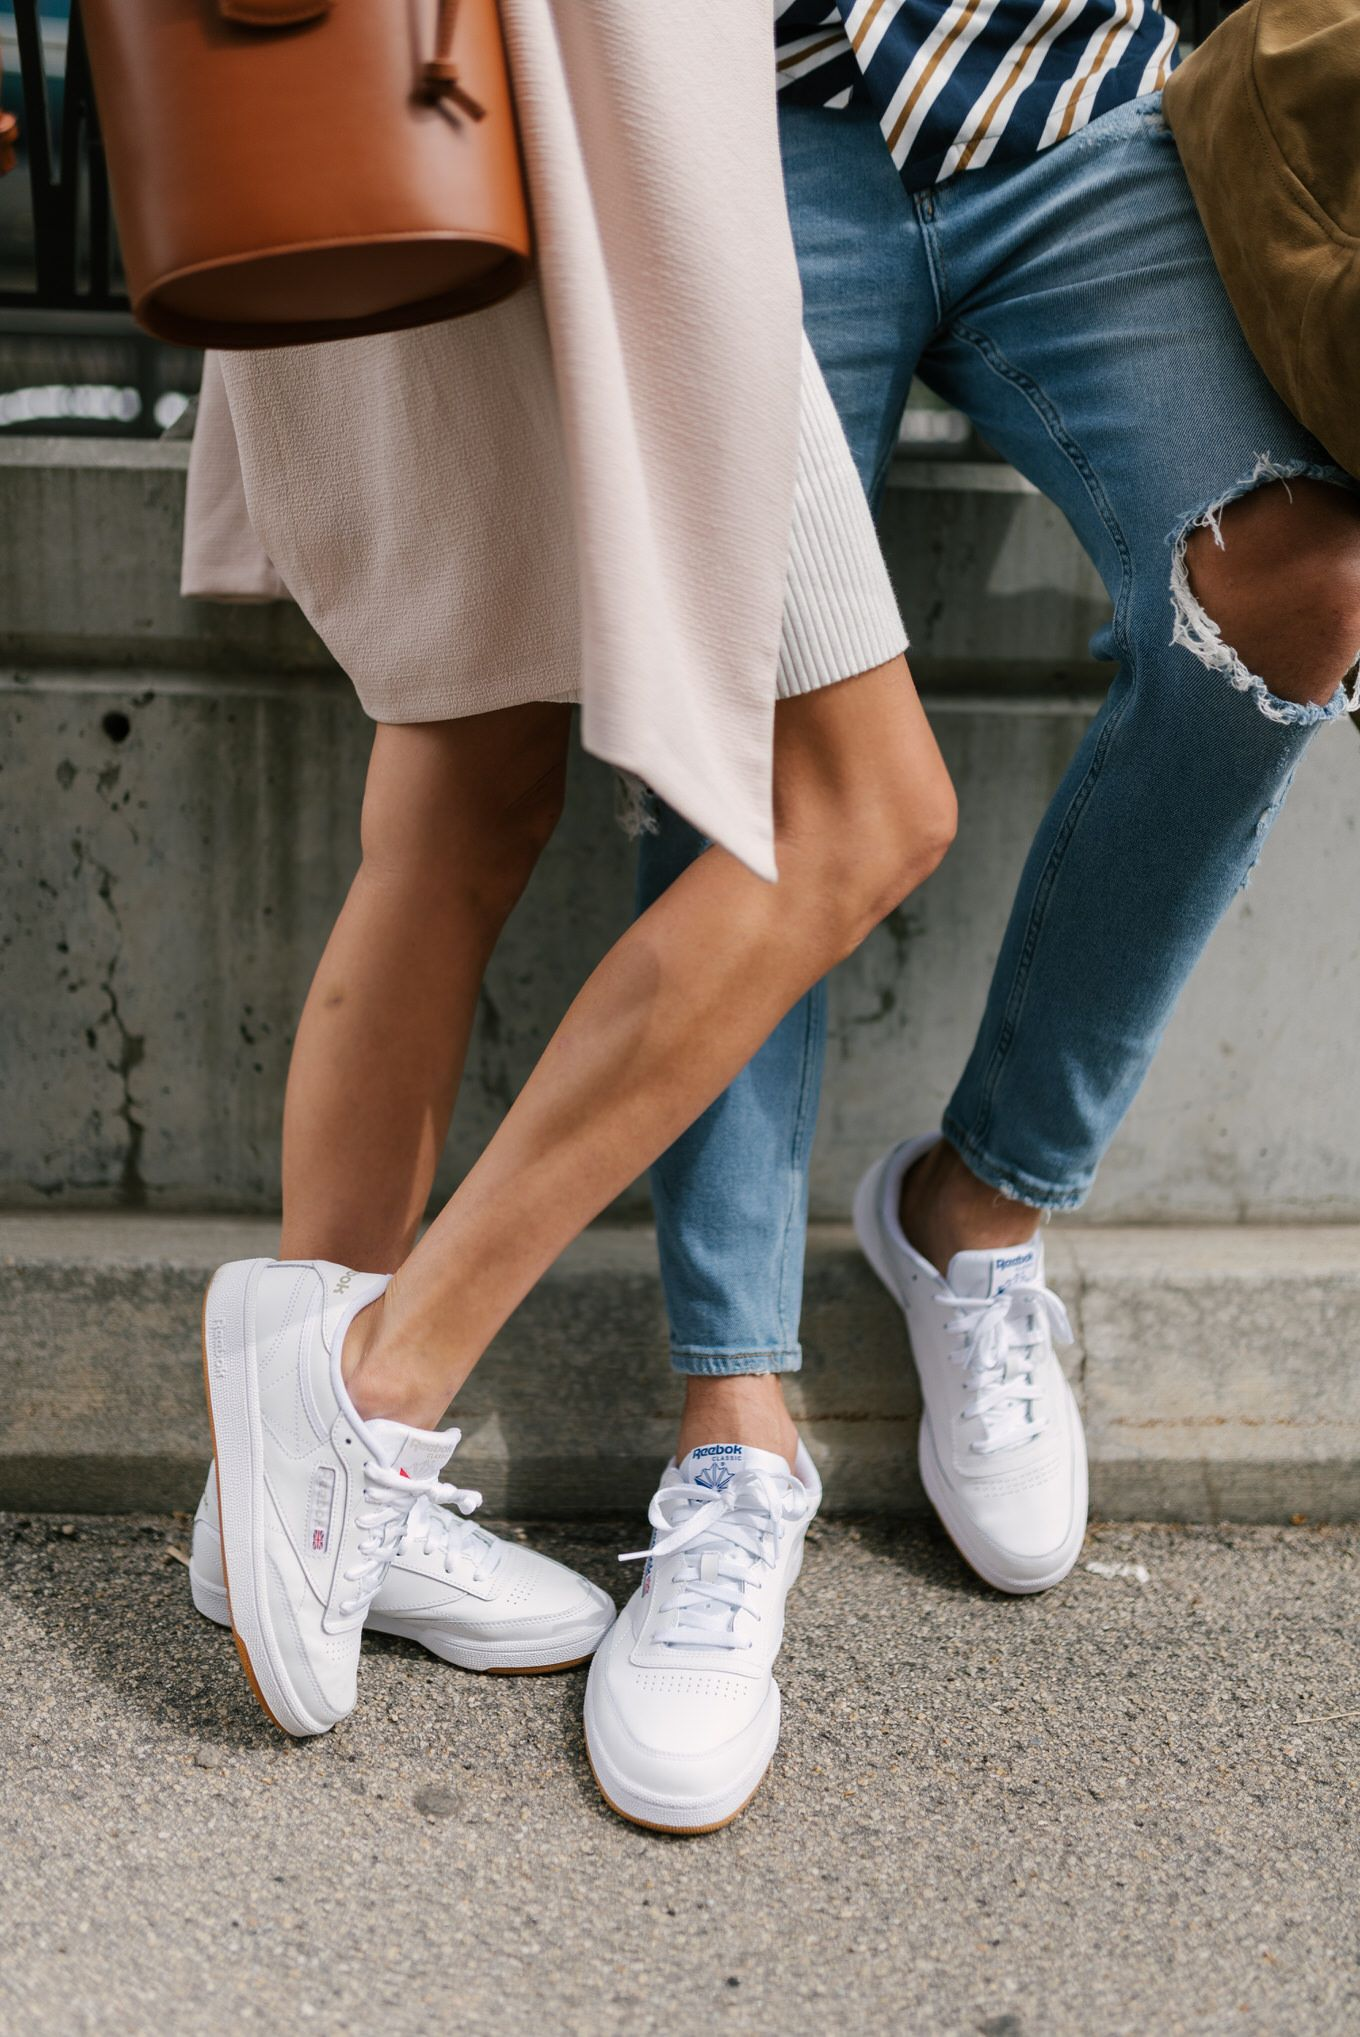 We love #white #sneakers and so does Blogger reamonalba